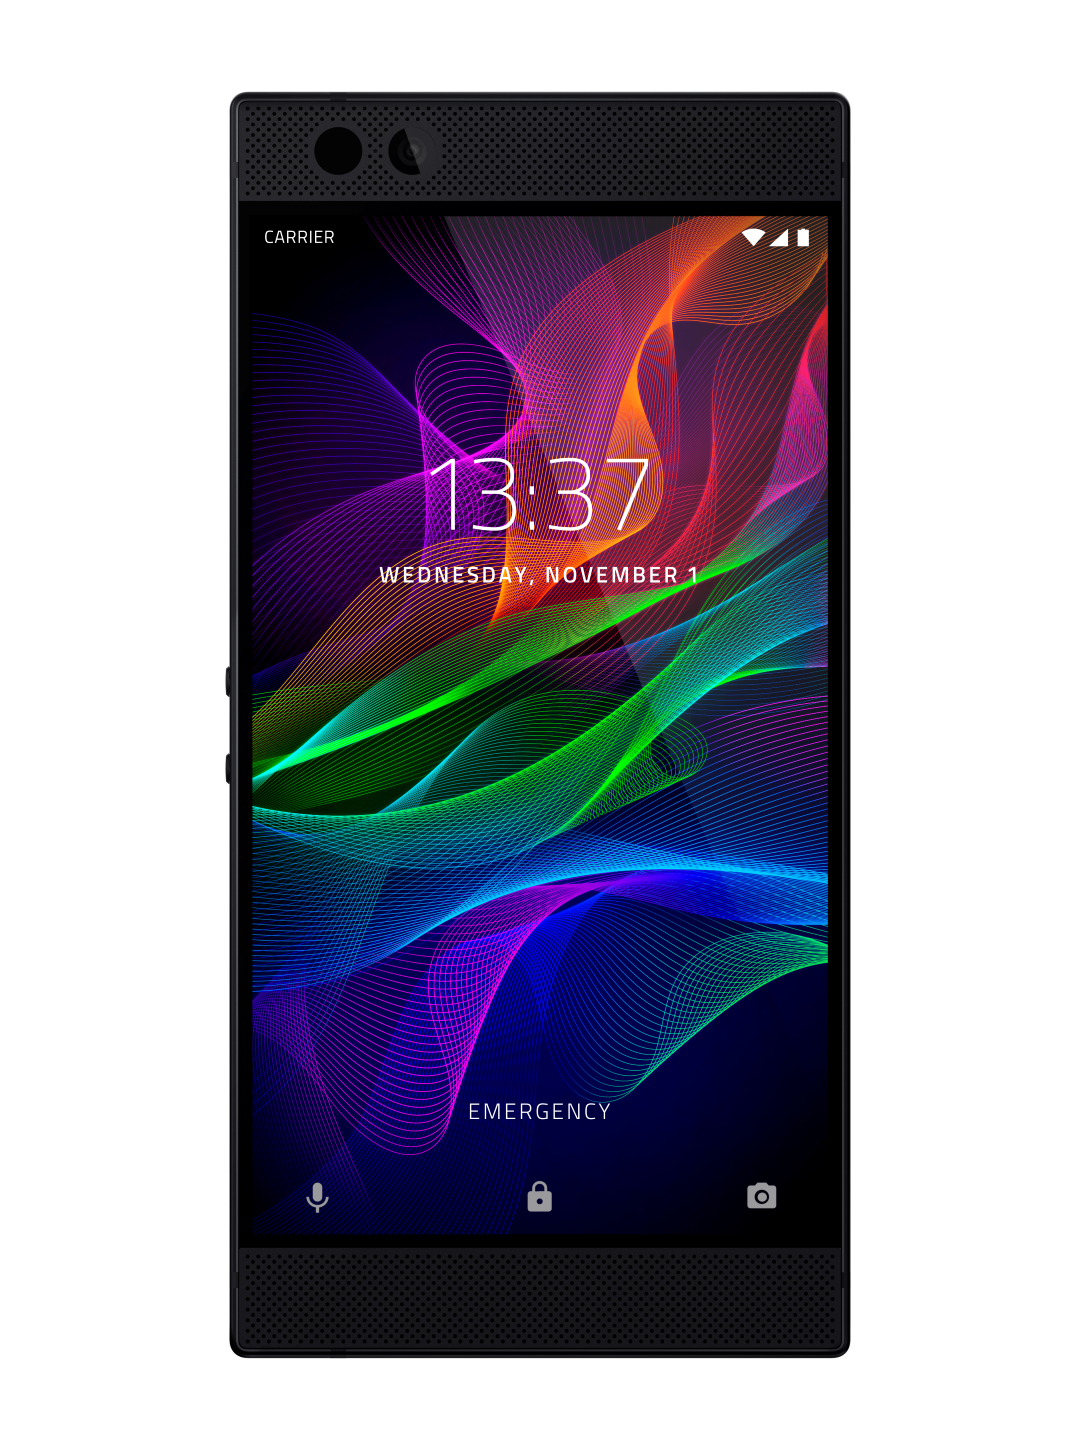 Razer Phone official: 120 Hz display, Qualcomm QSync (GSync for